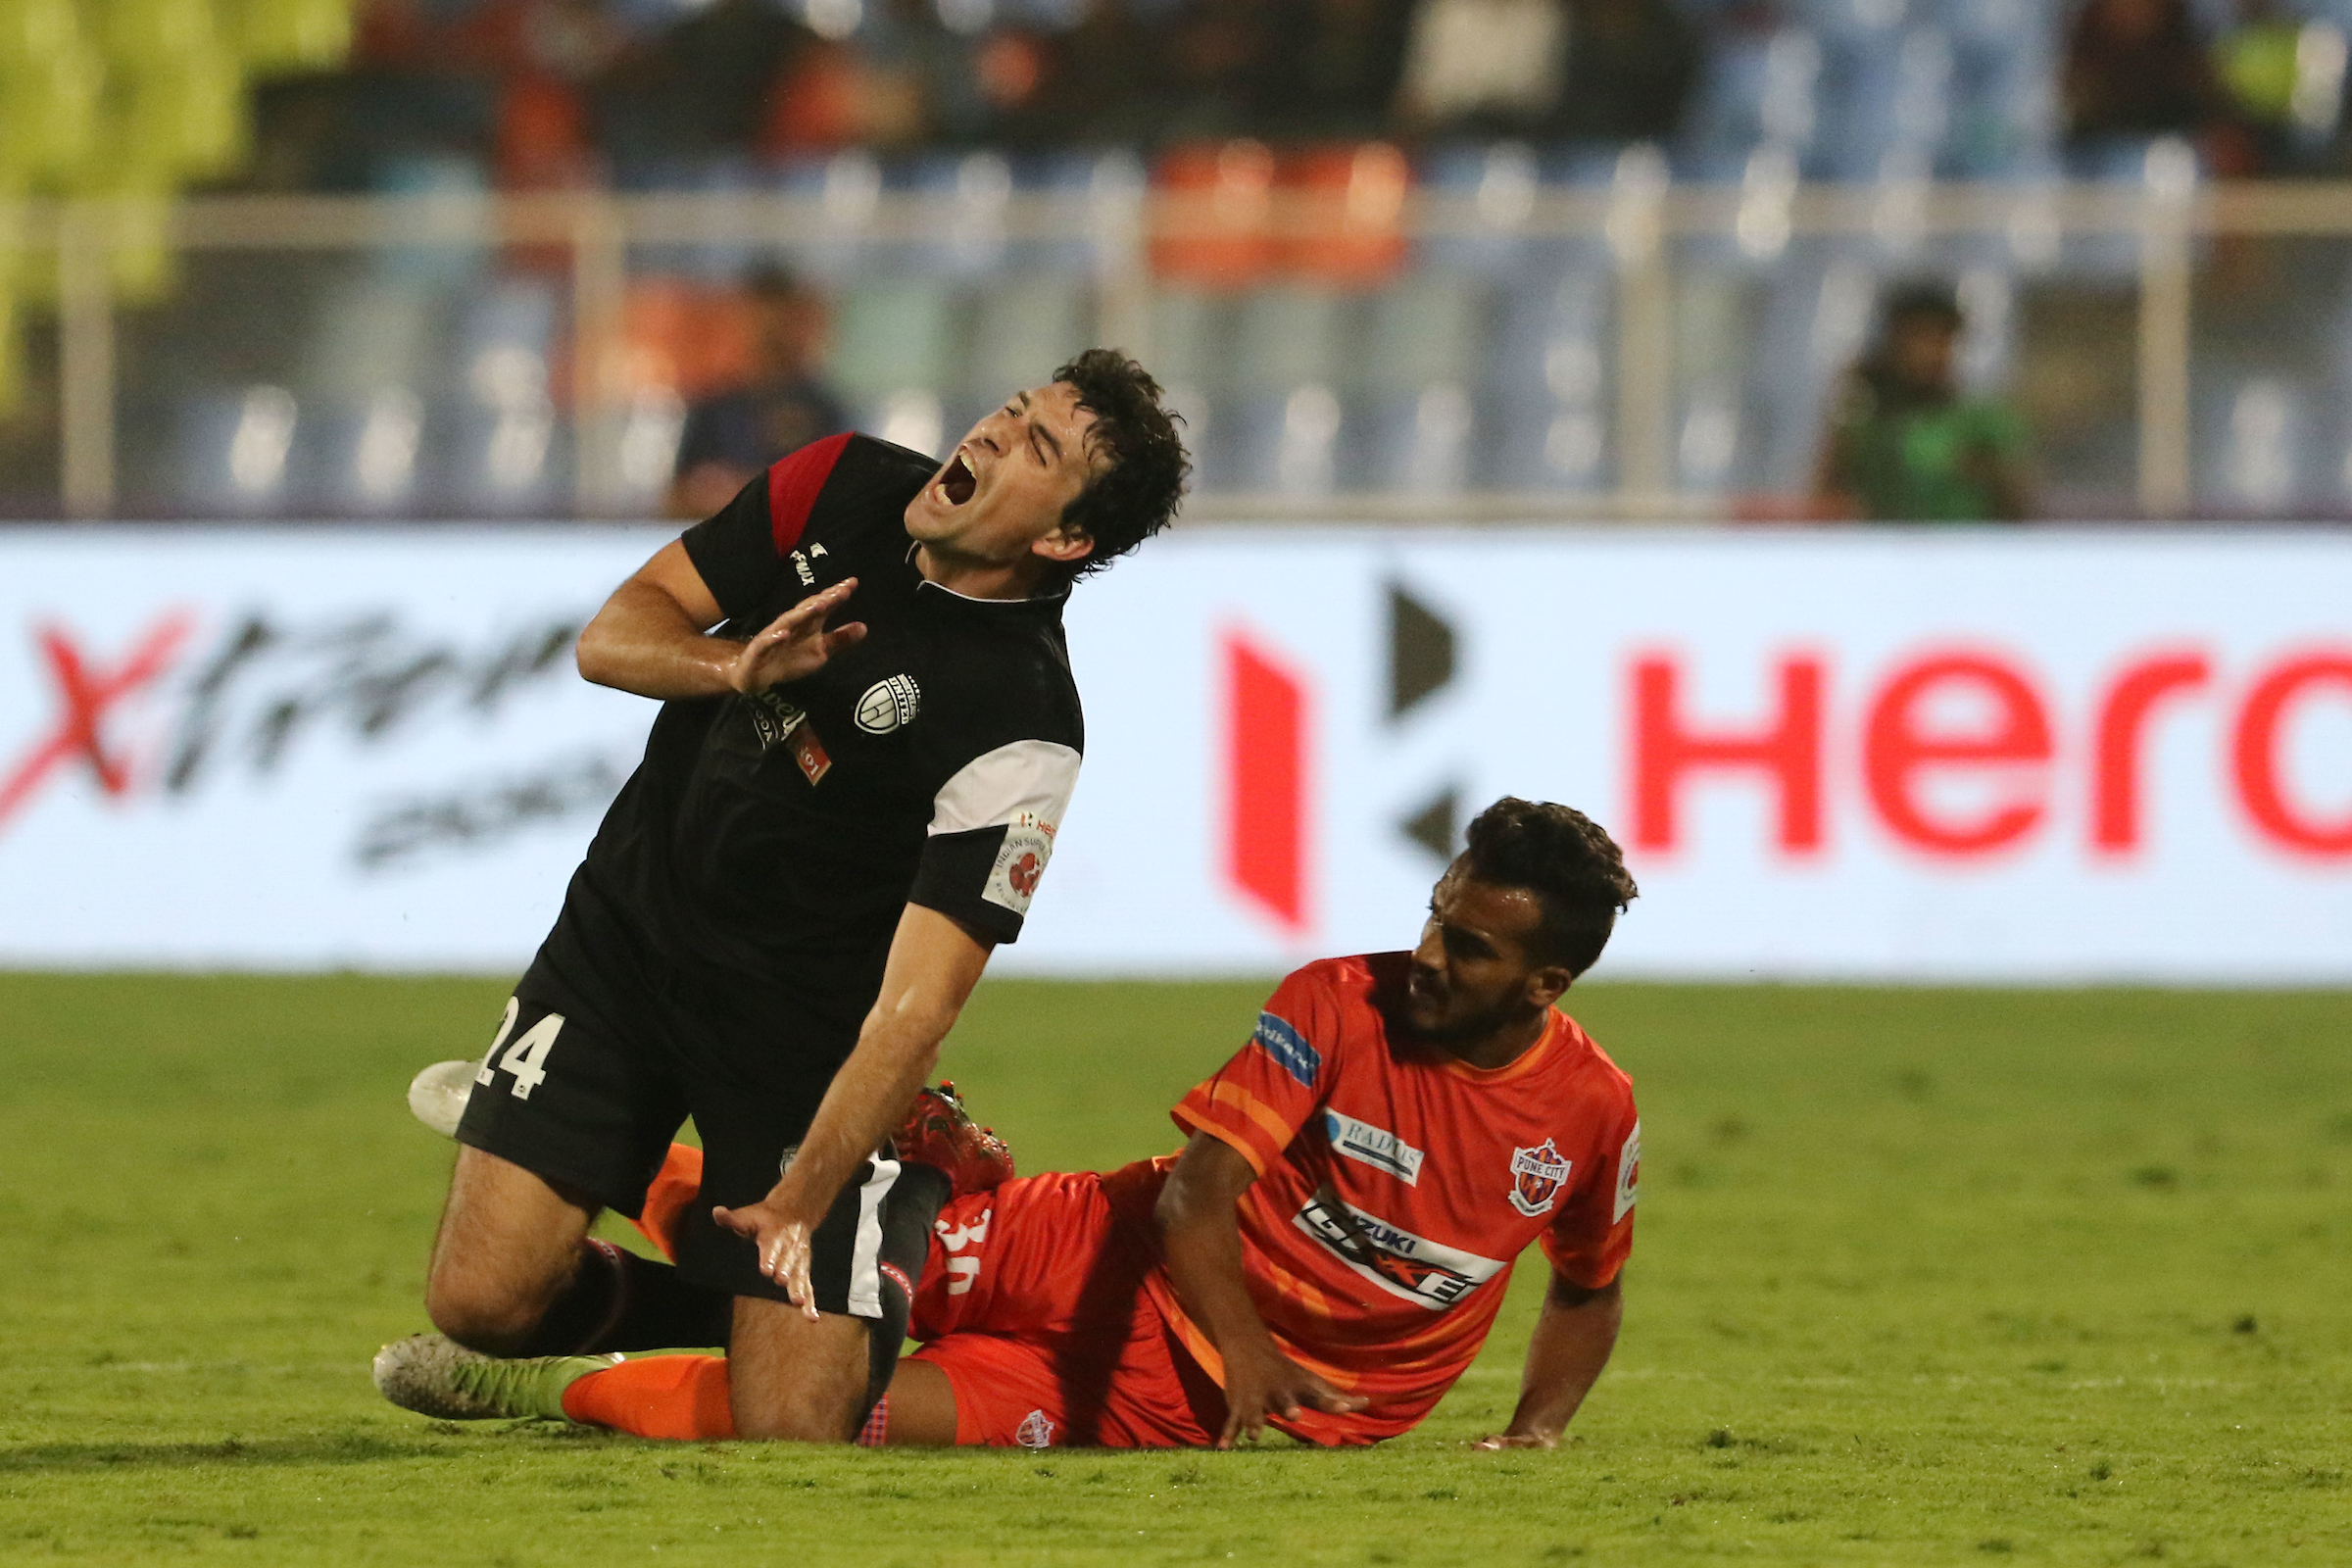 Juan Mascia Sahil Panwar FC Pune City NorthEast United ISL 2018-19